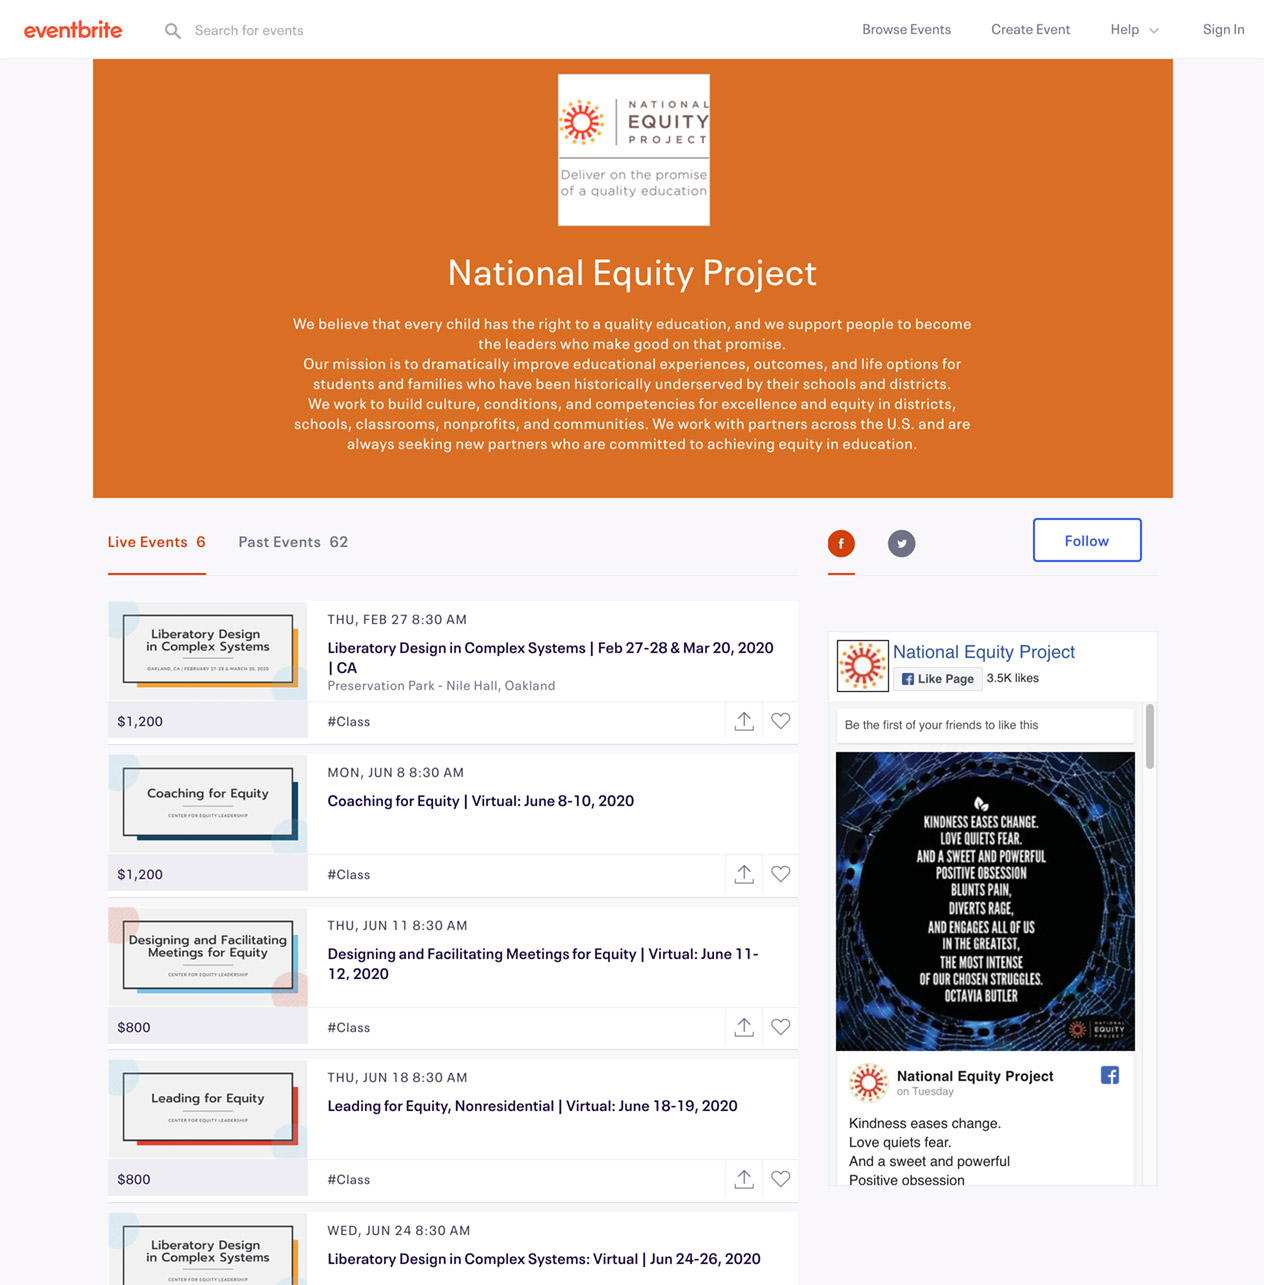 National Equity Project Trainings